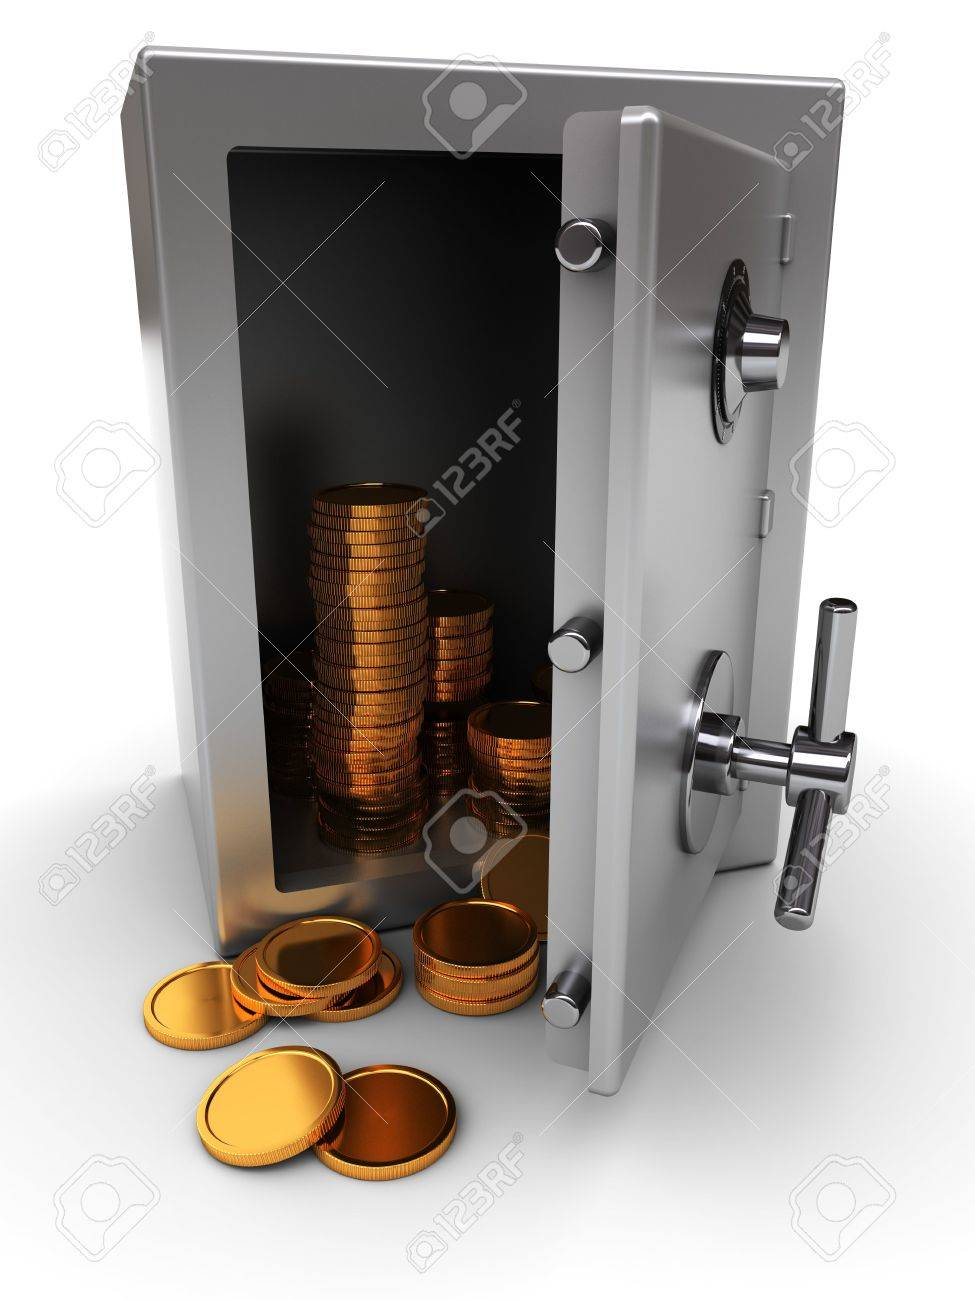 3d Illustration Of Opened Safe With Golden Coins Stock Photo ...